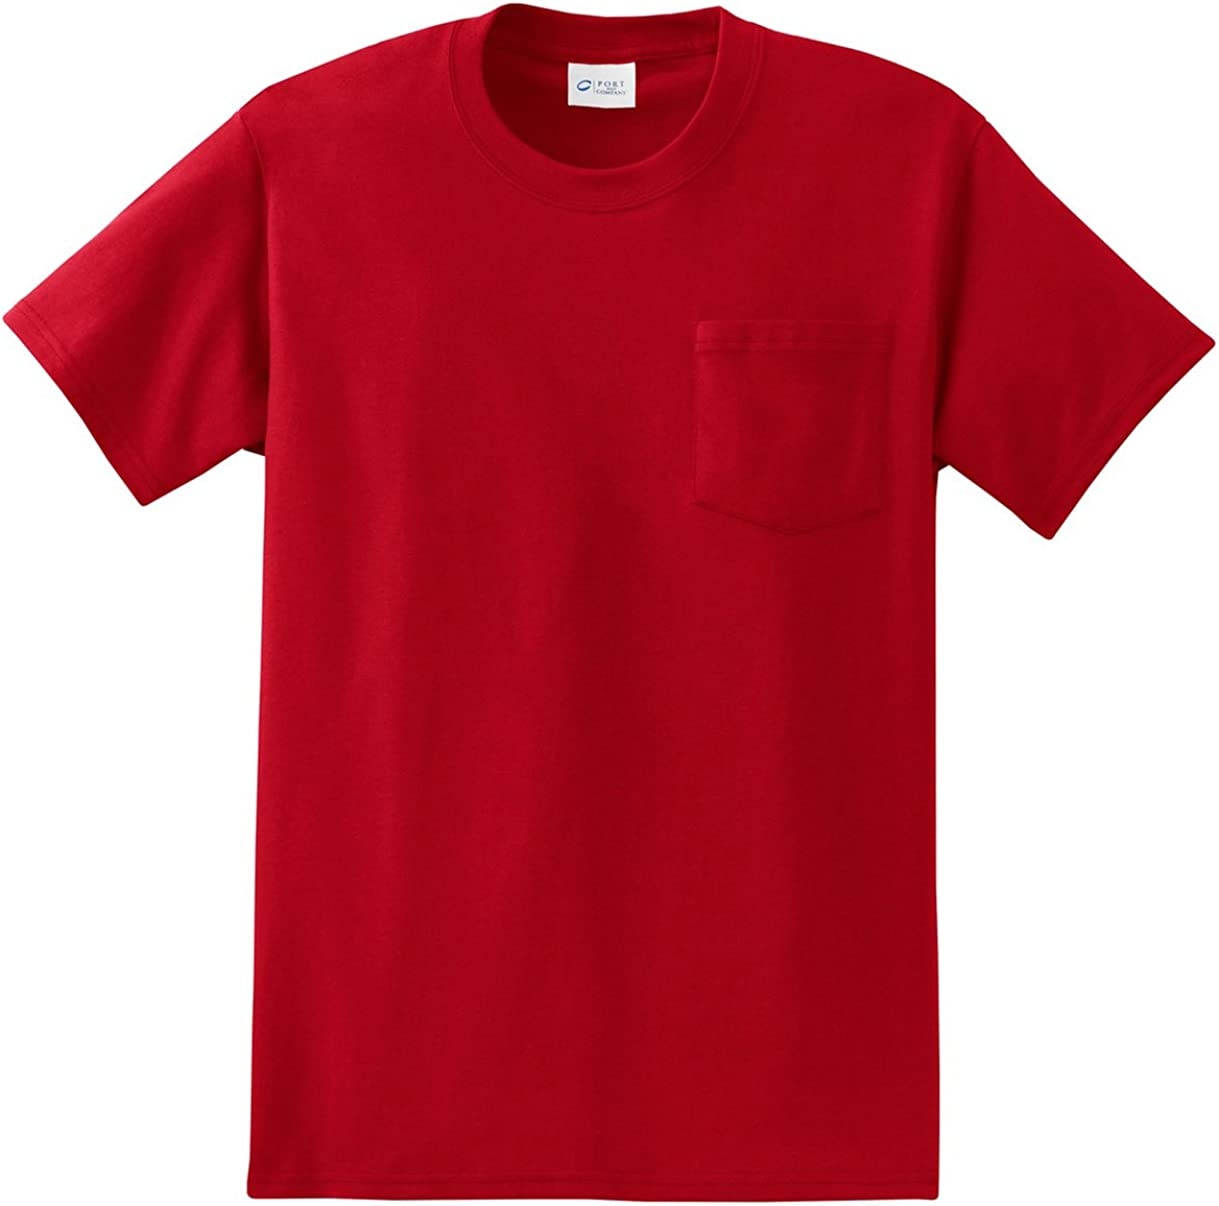 Port /& Company Mens Tall Essential T Shirt with Pocket